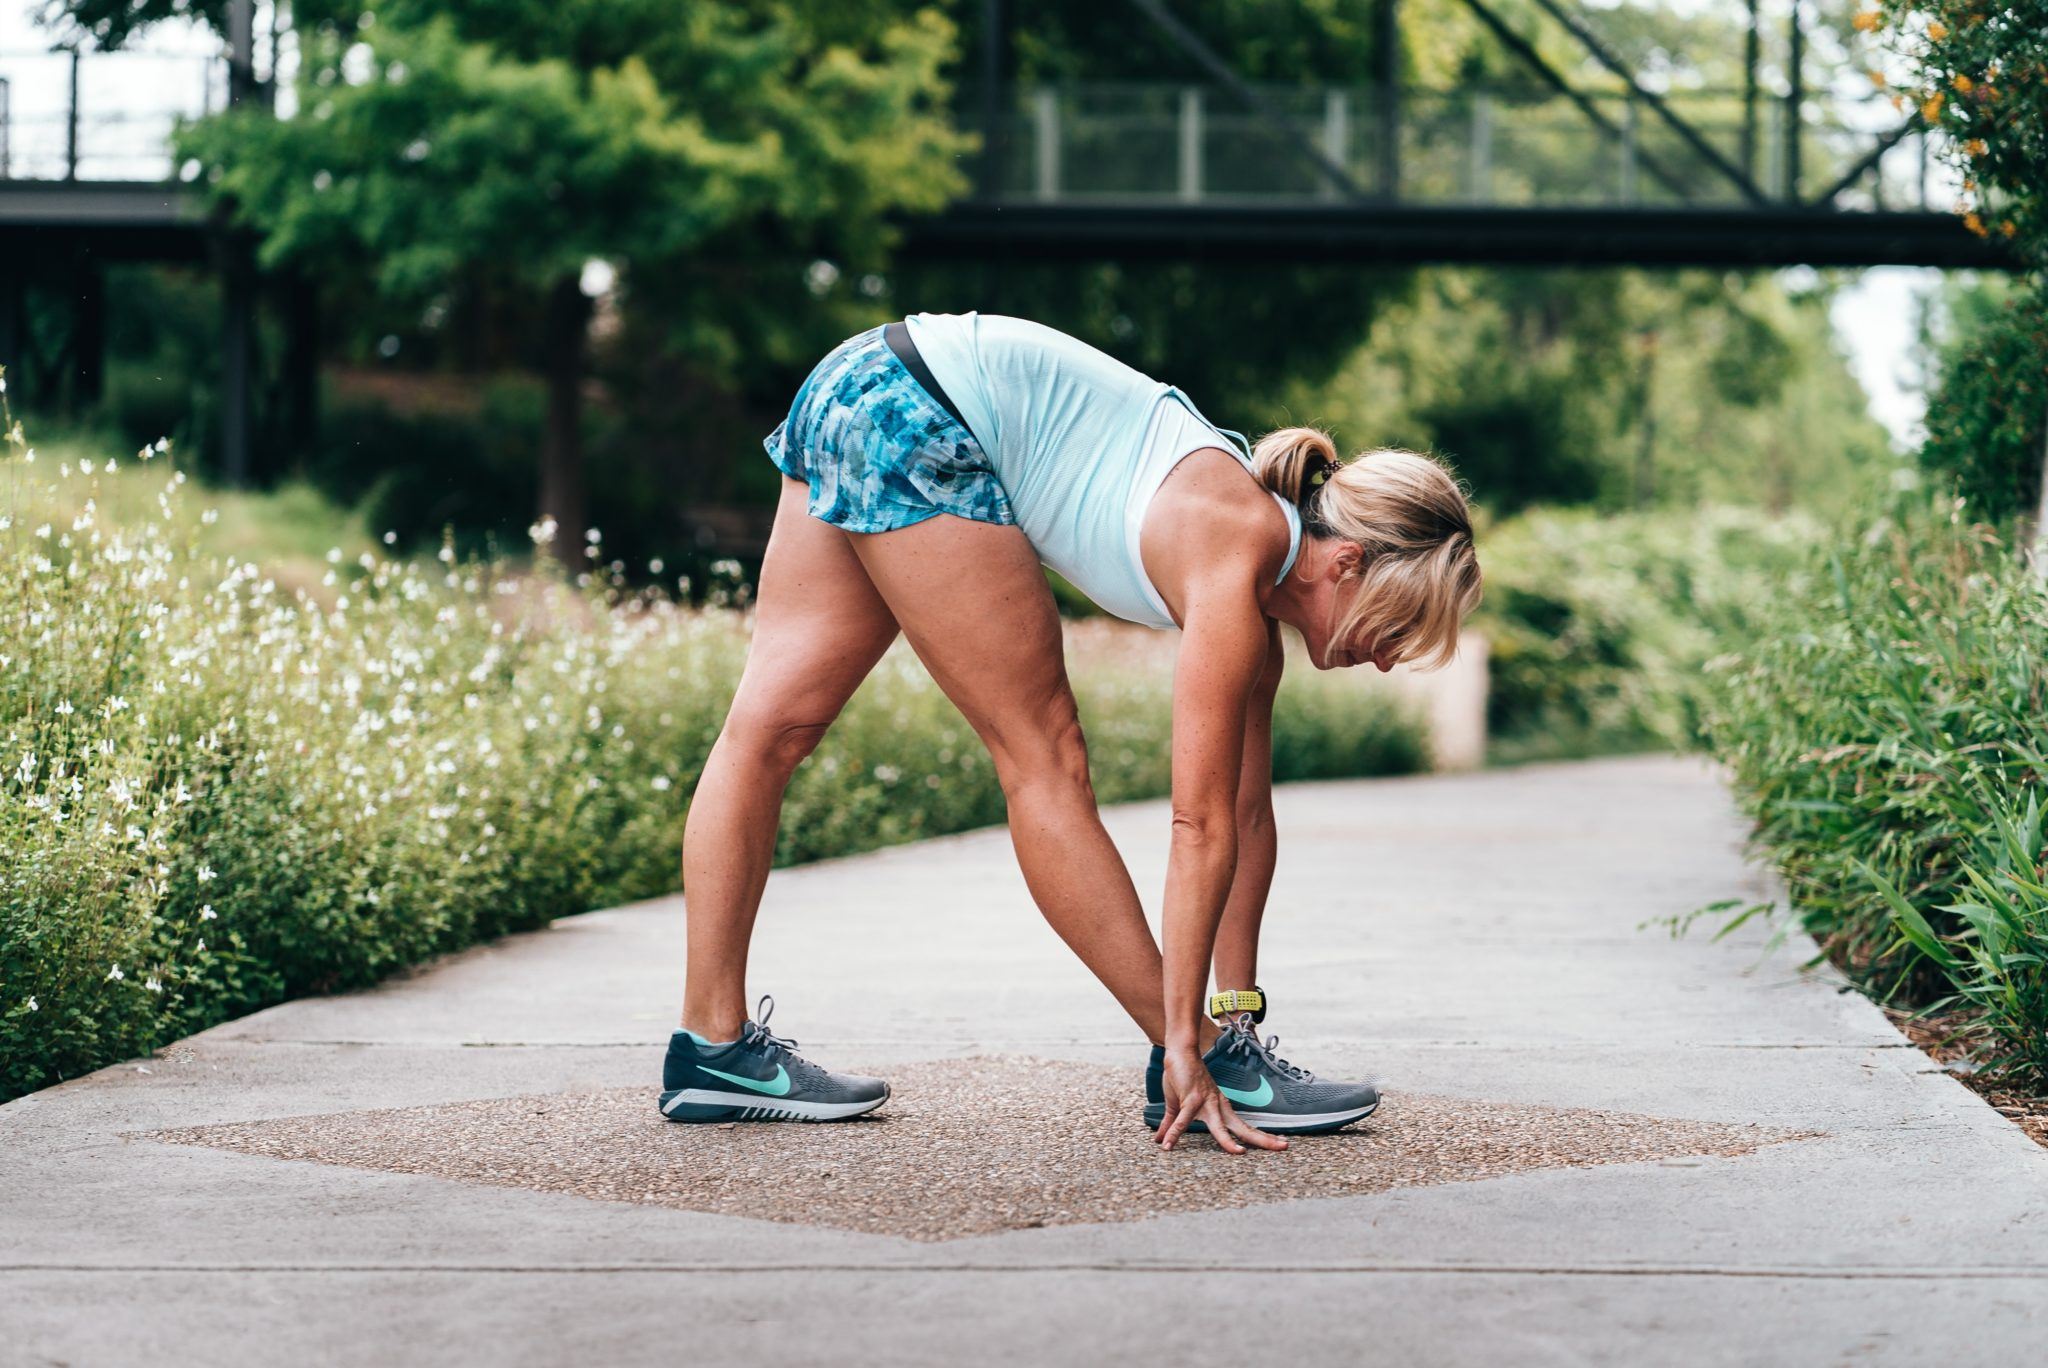 Woman wearing shorts doing stretch on path